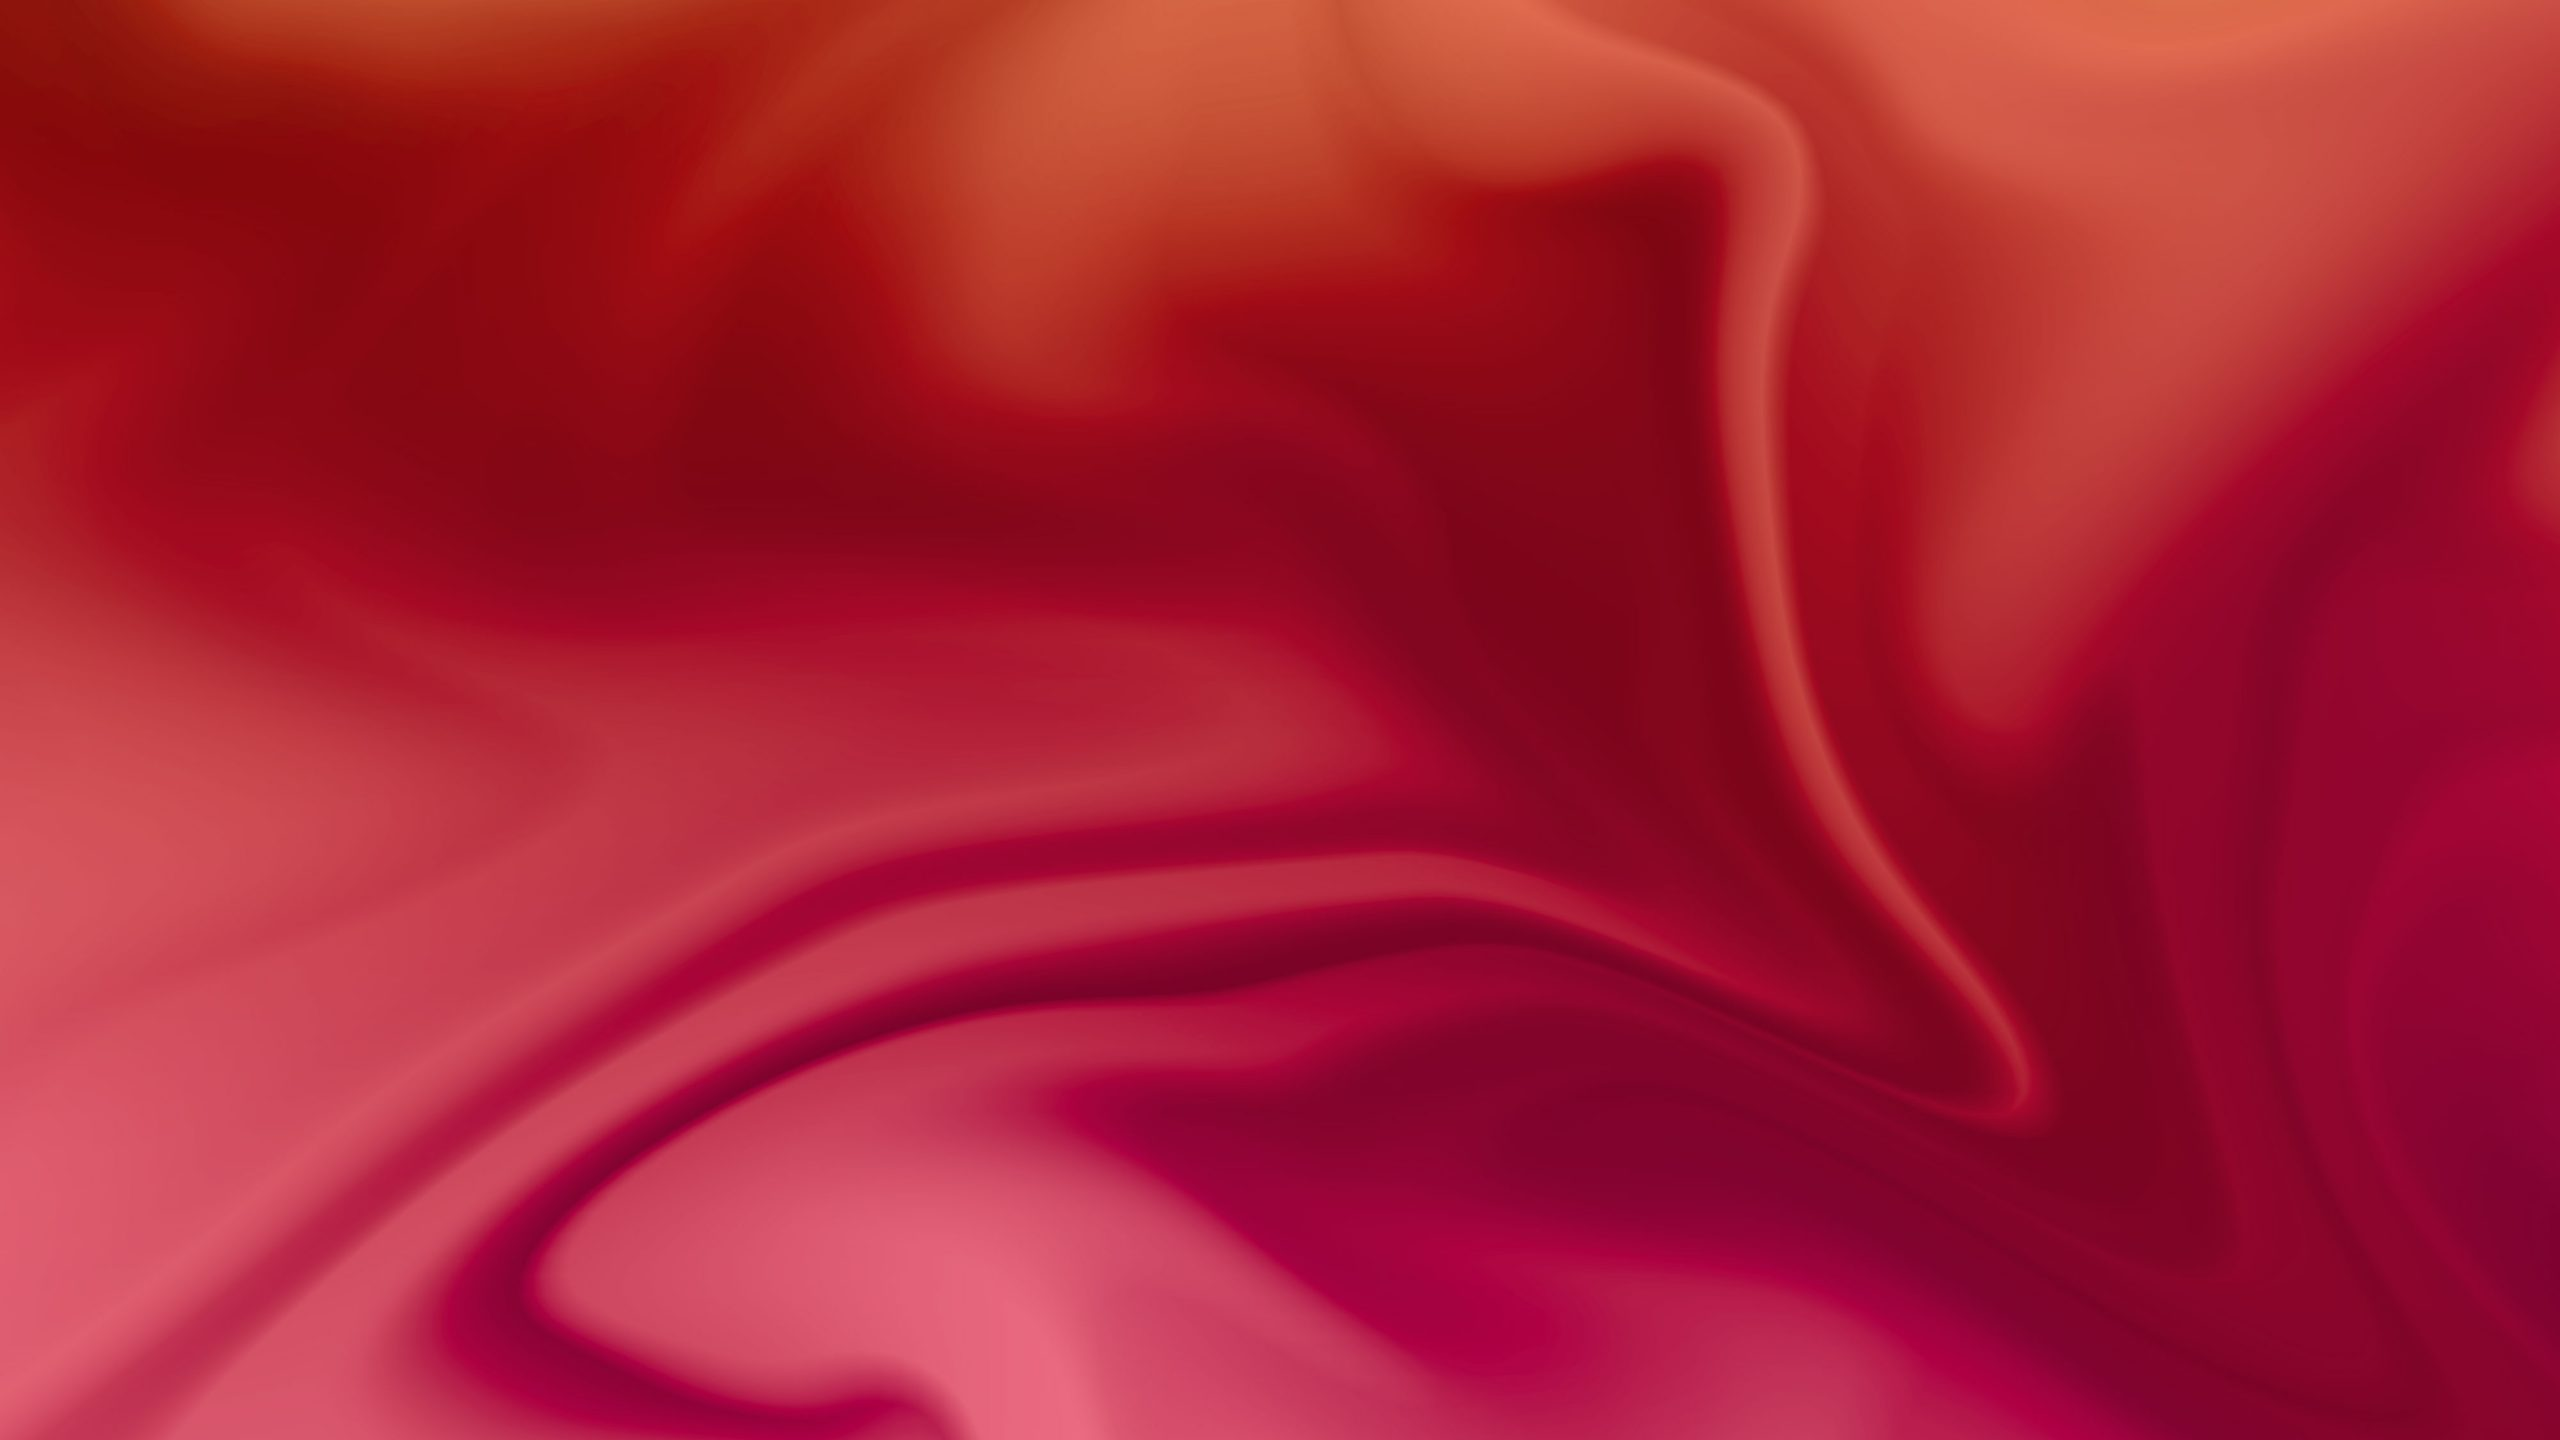 Red liquid abstract background wallpaper